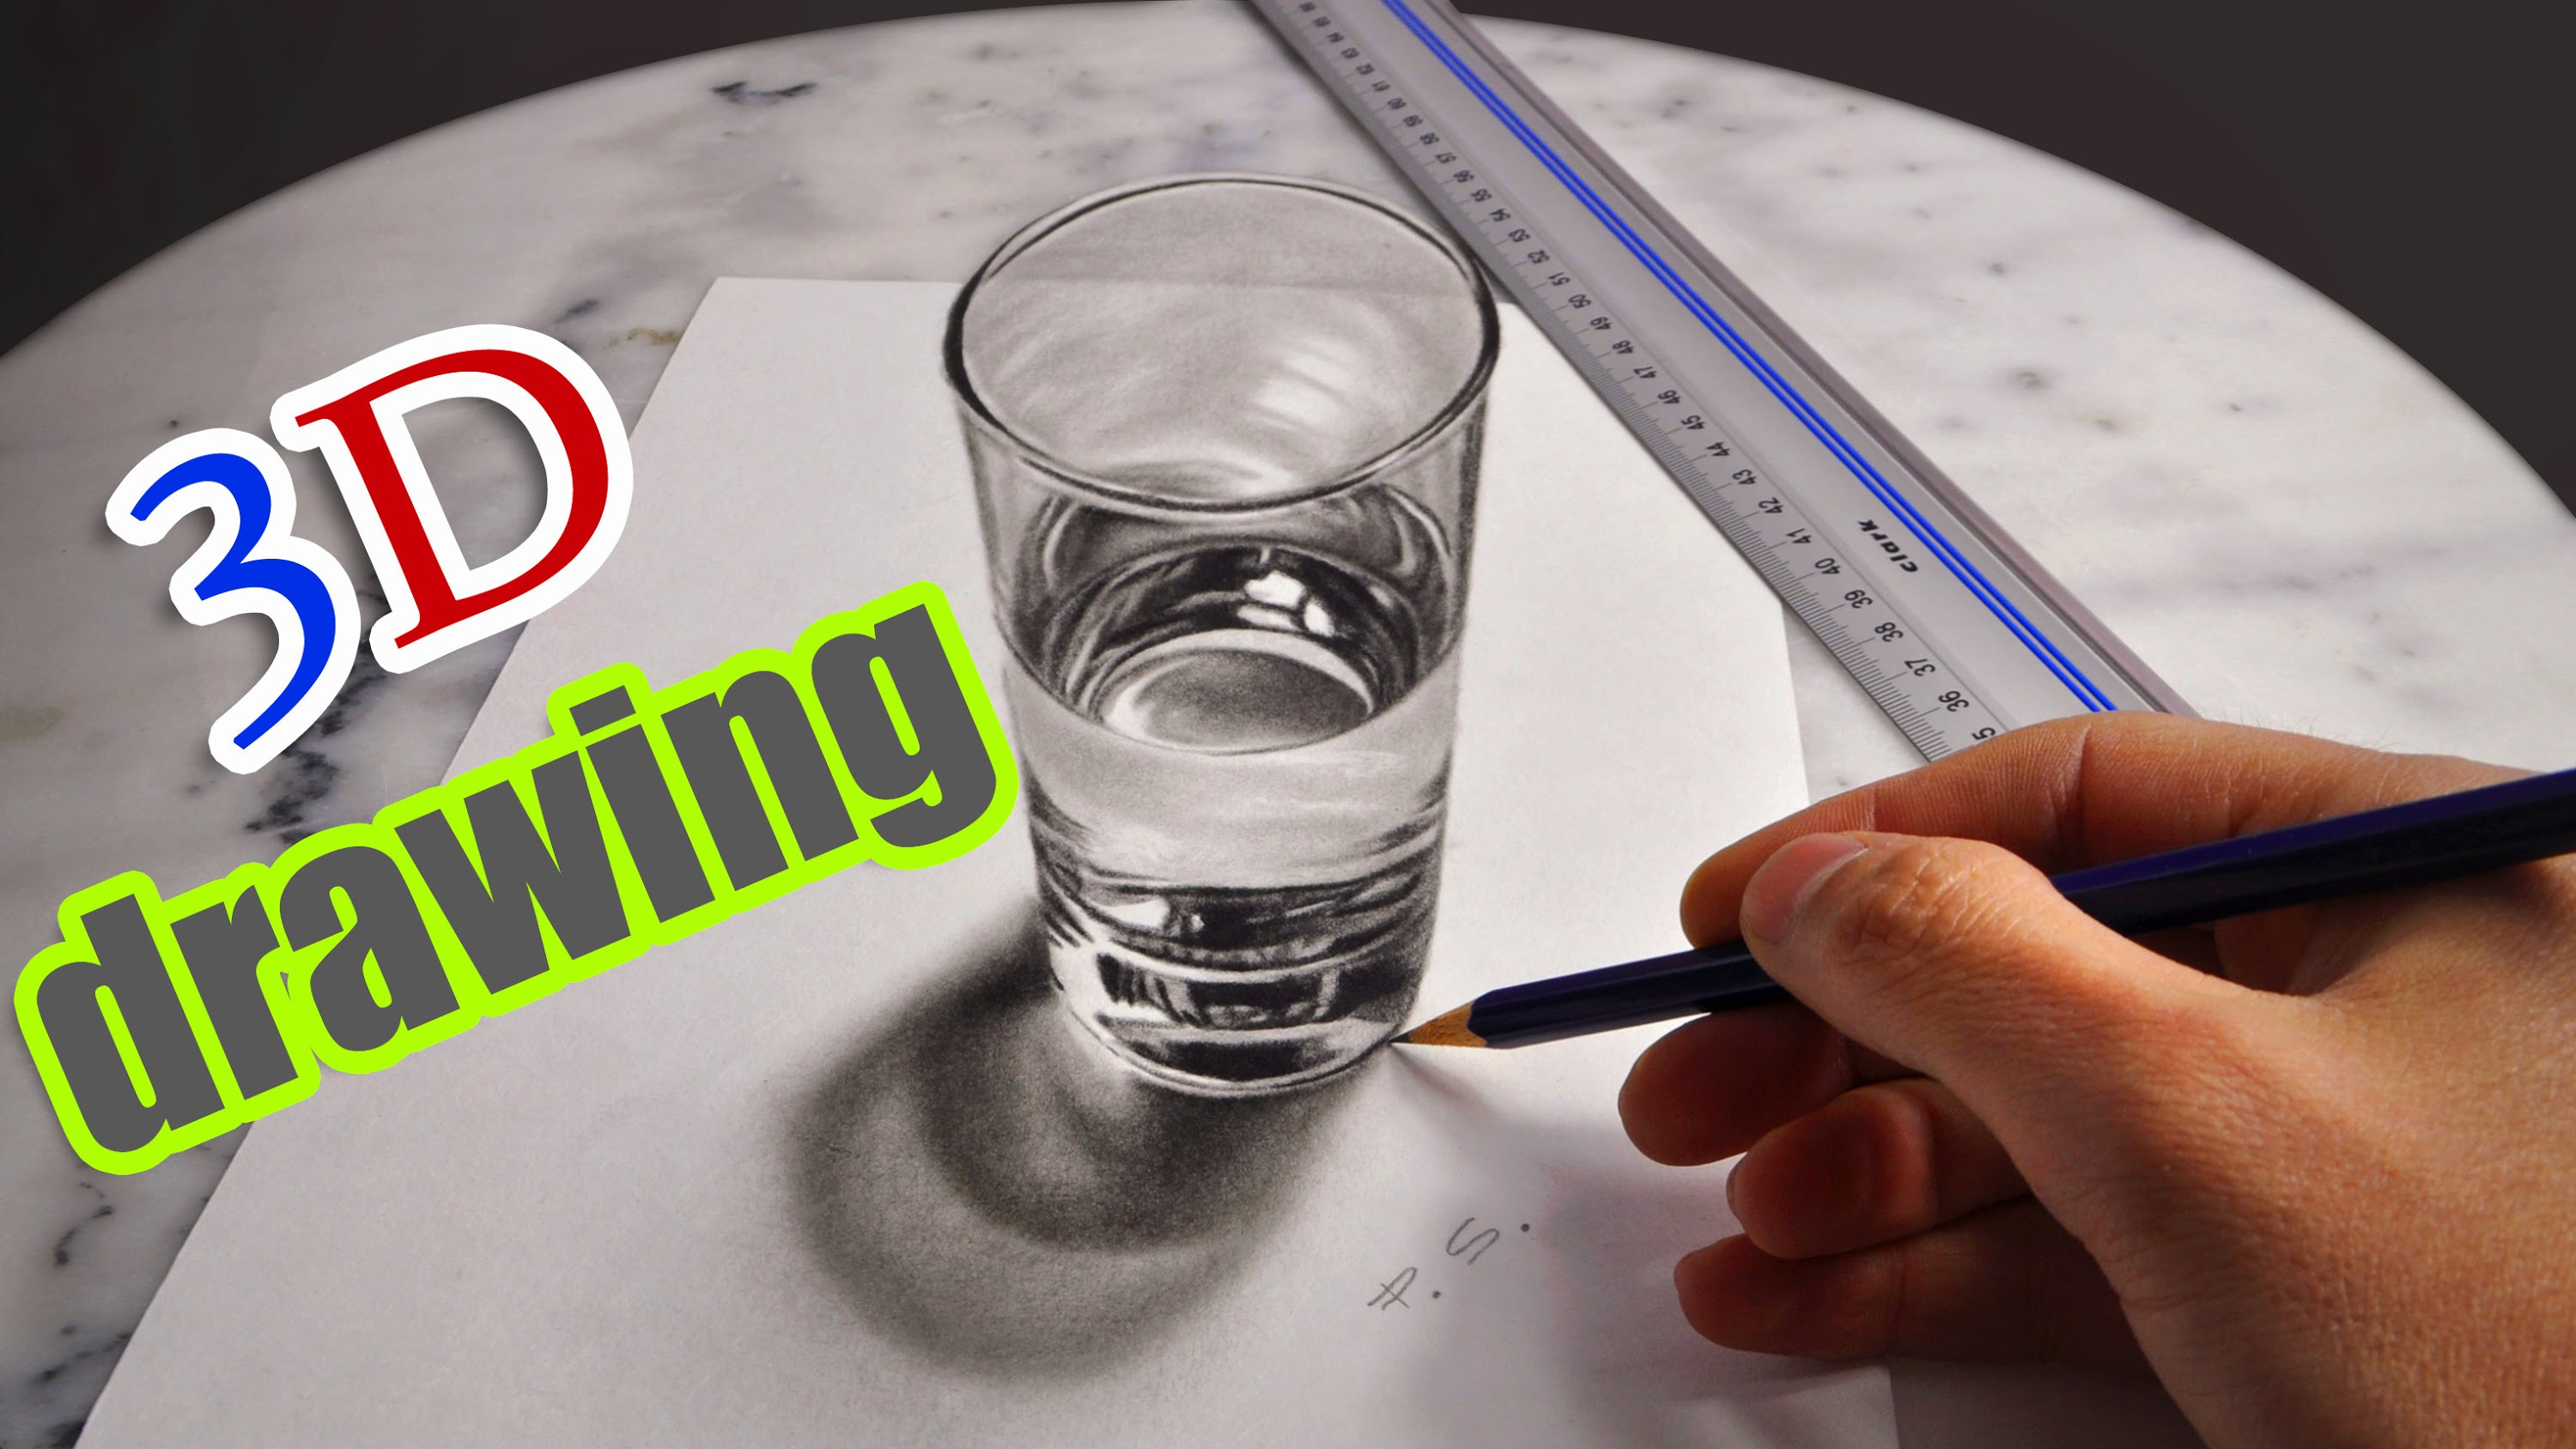 Drawn glasses realistic AMAZING of YouTube 3D Water/